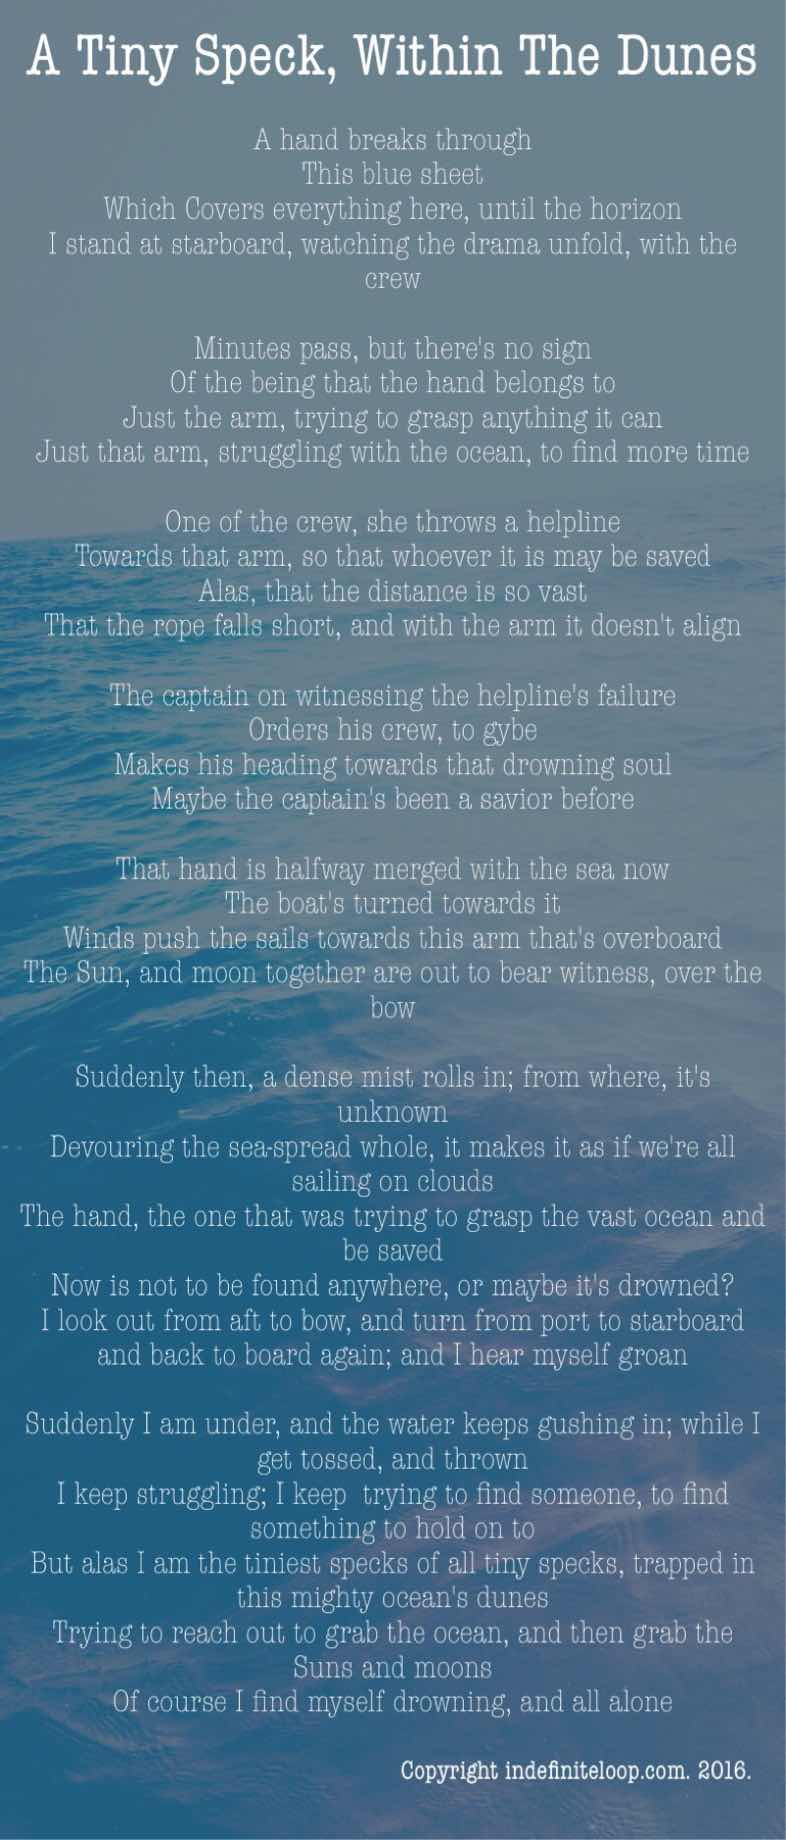 A Tiny Speck, Within The Dunes - Poem - Copyright indefiniteloop.com